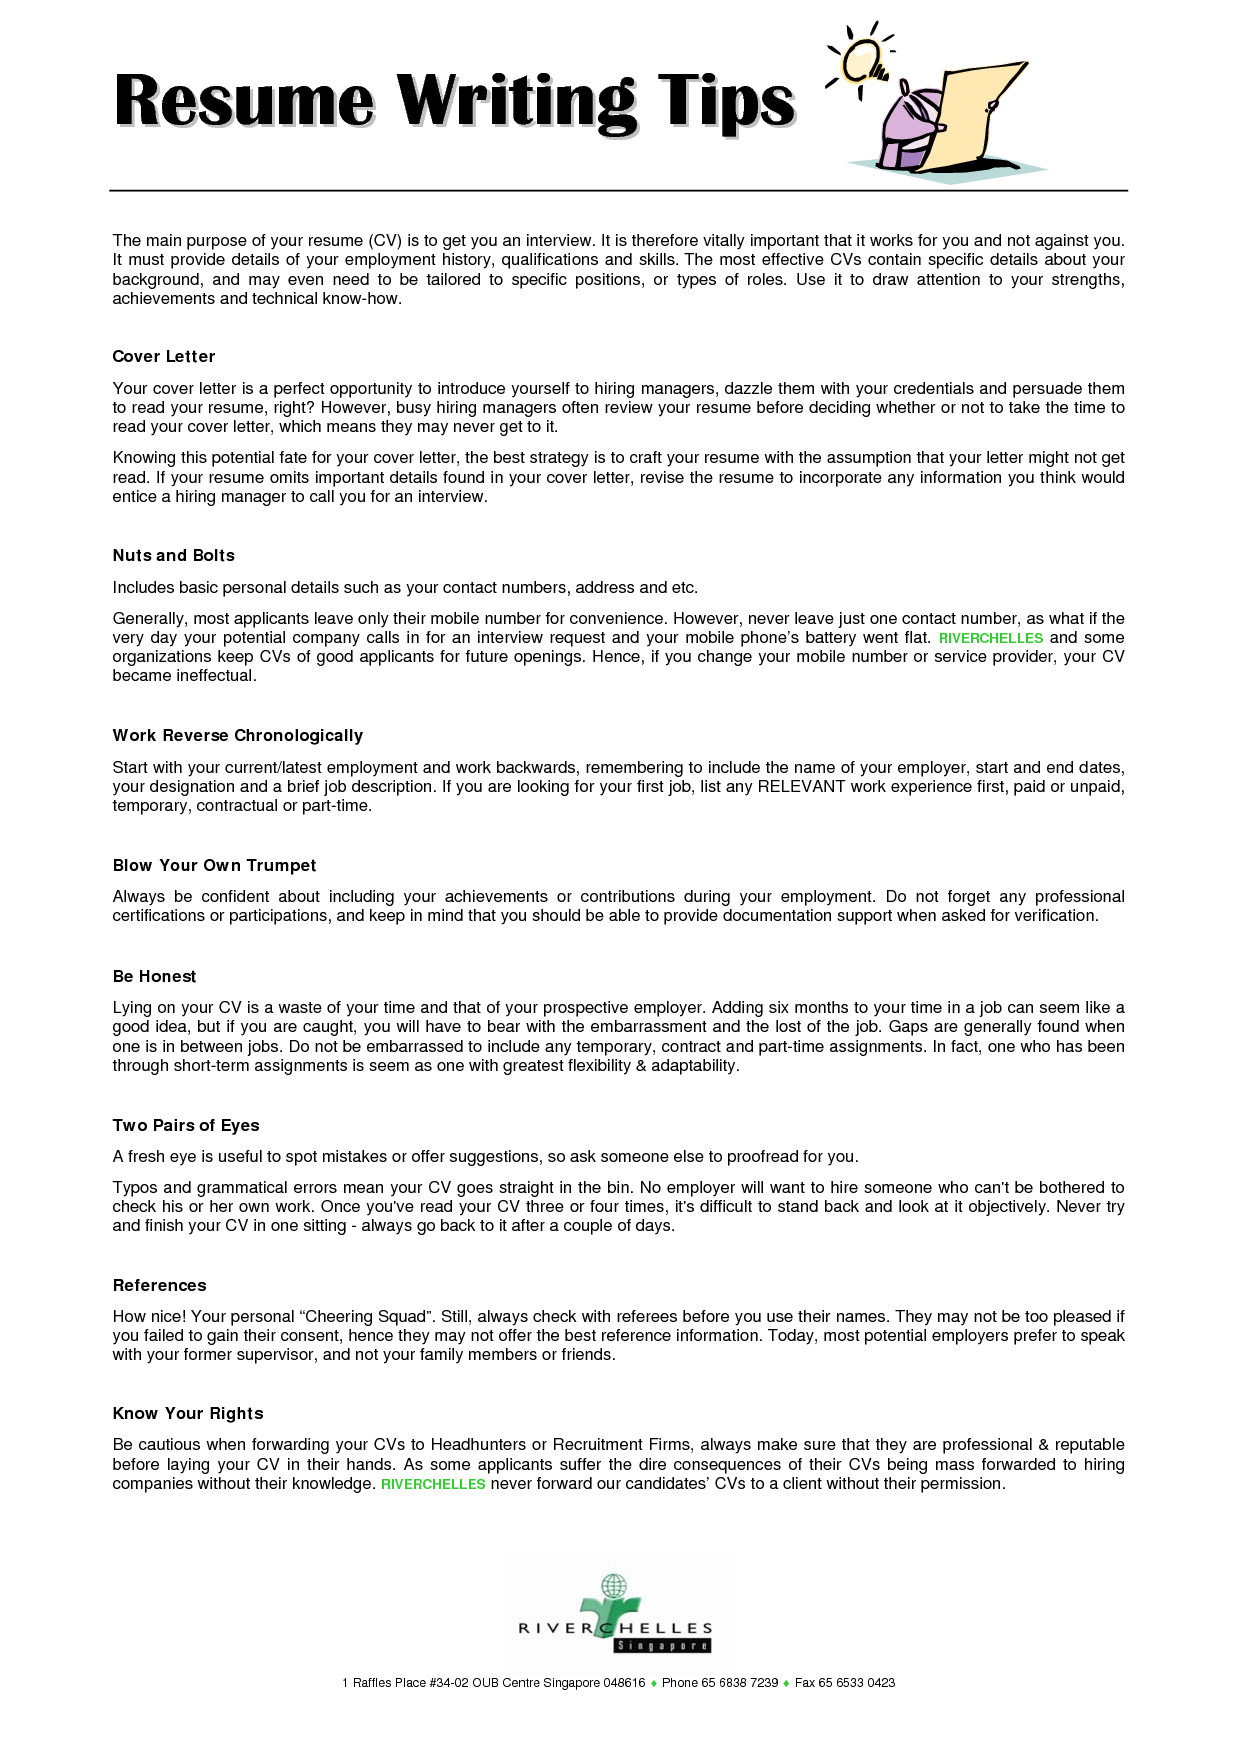 Resume Tips For College Students   learnhowtoloseweight net Preschool Teacher Resume Sample Free are really great examples of resume  and curriculum vitae for those who are looking for job